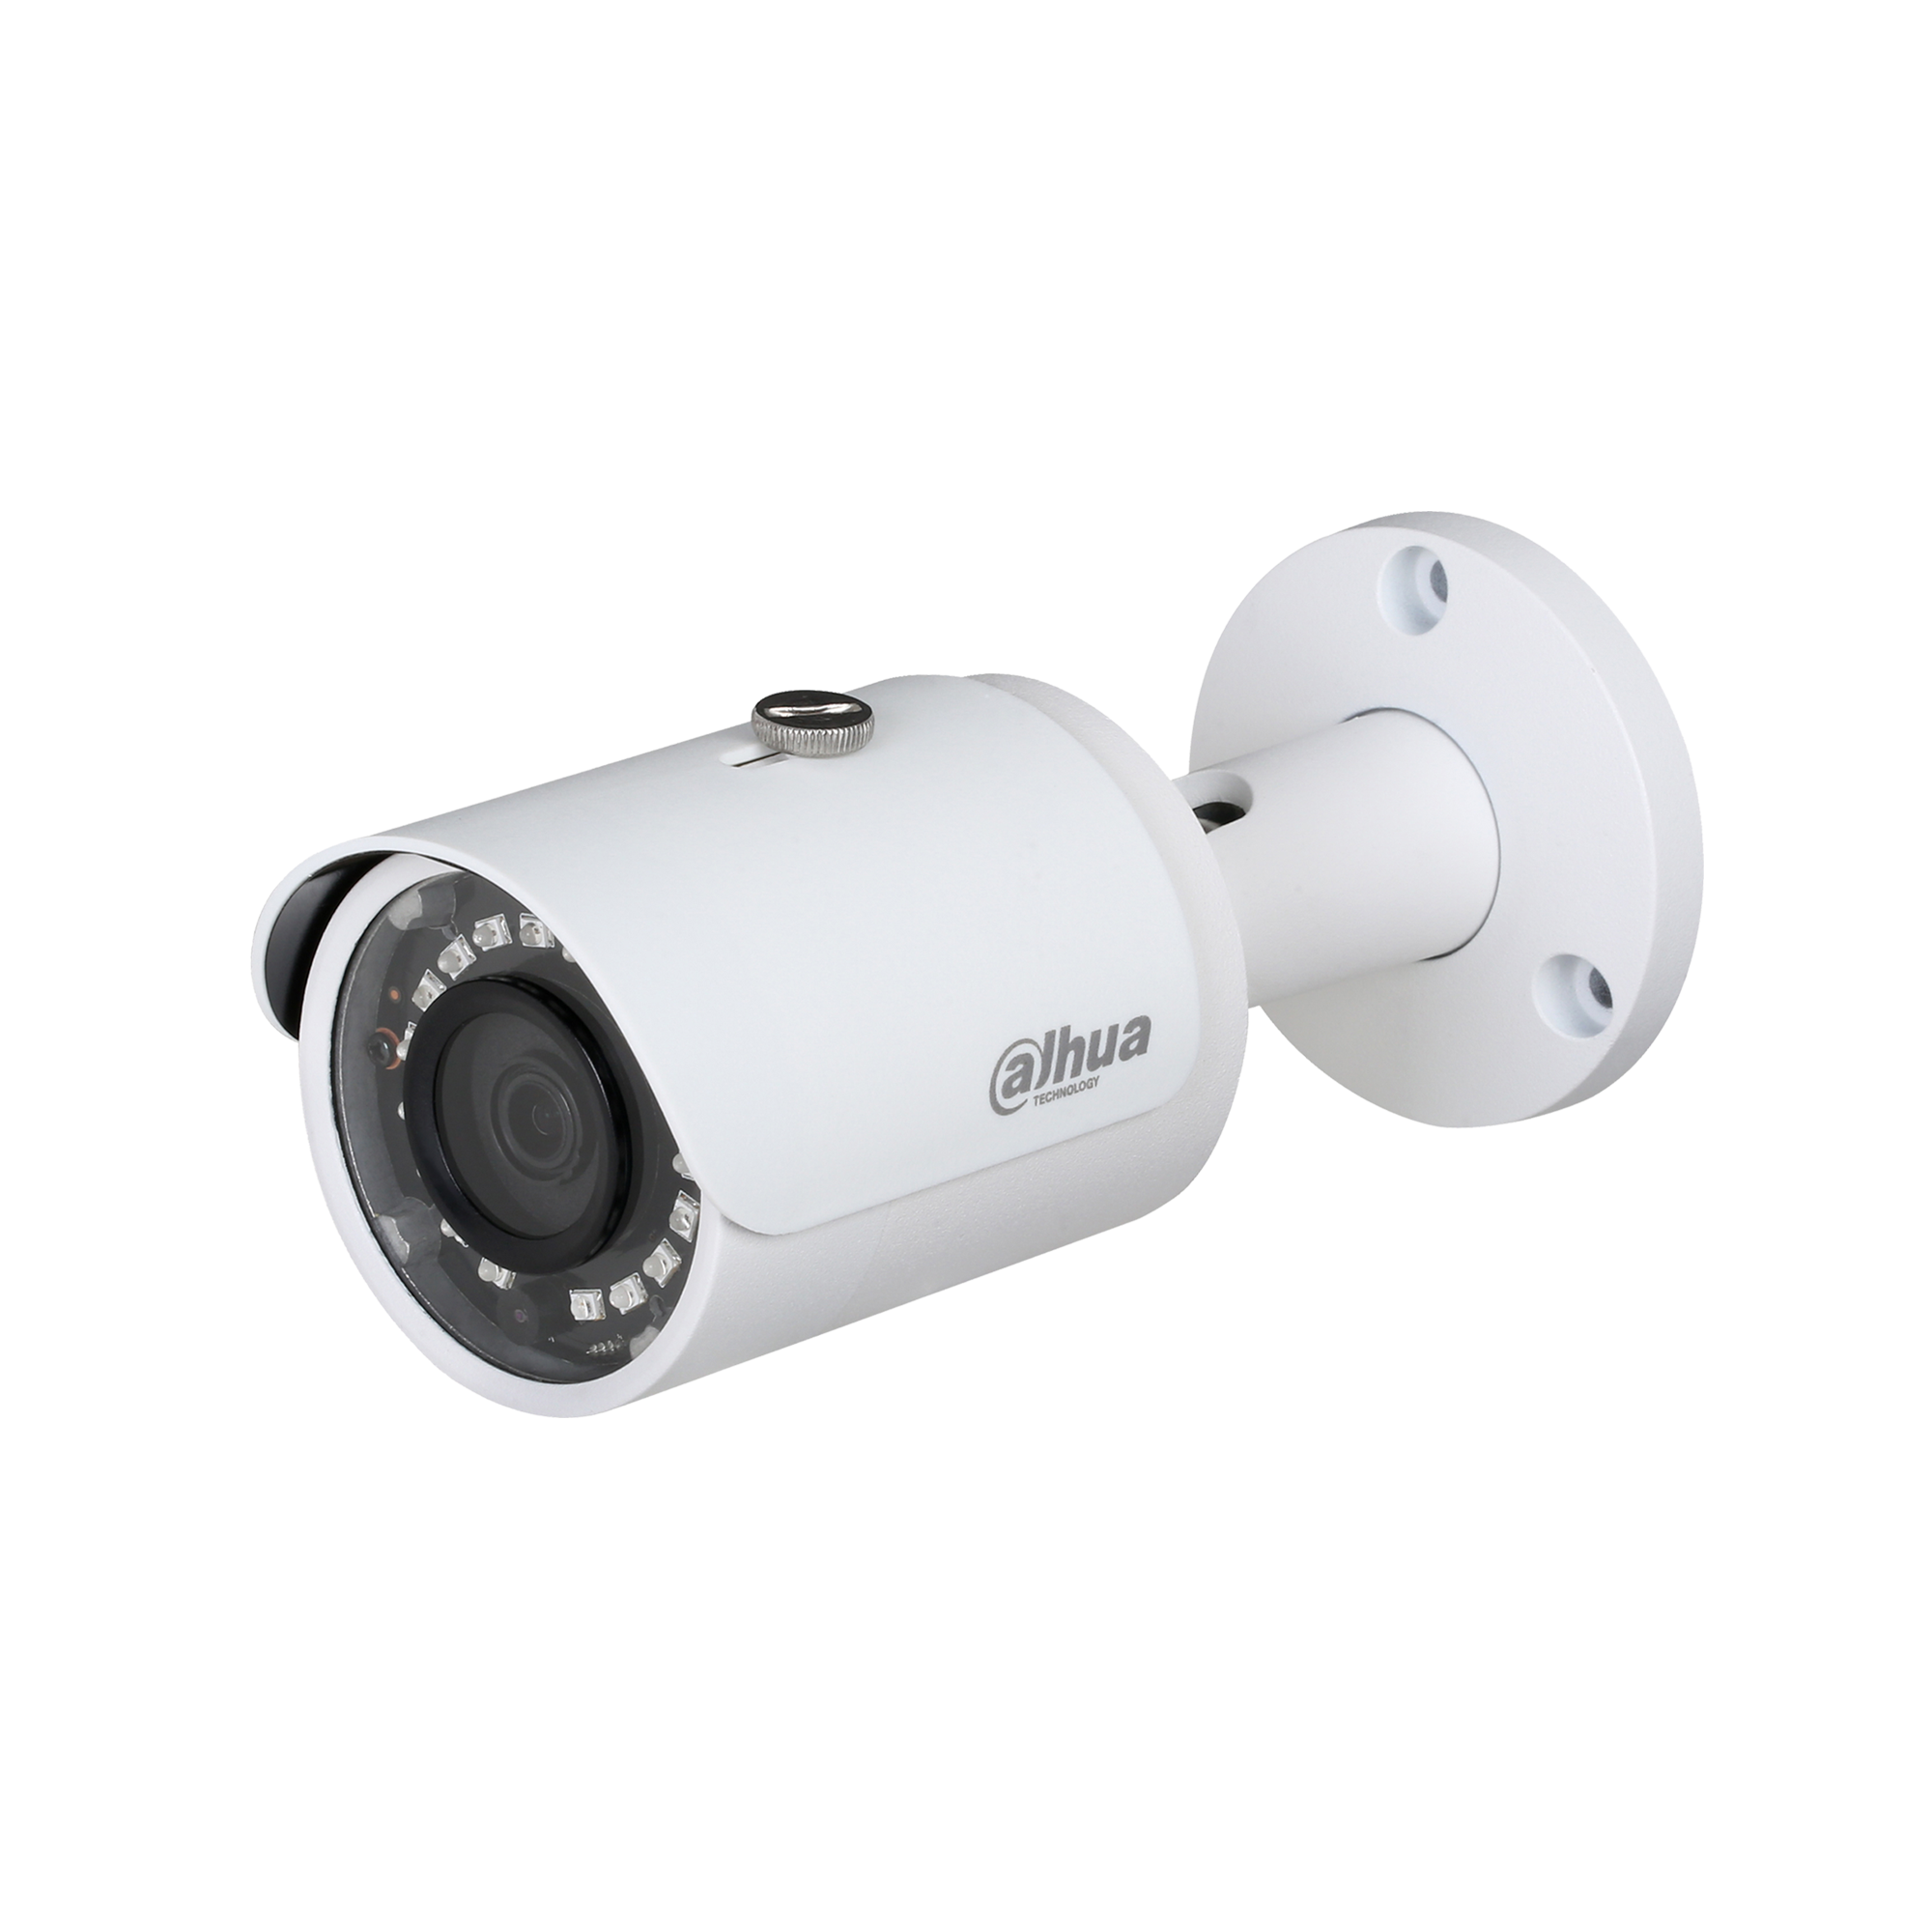 IPC-HFW1420S Dahua CCTV Camera Security 3.6MM LENS 4MP Network IR POE Mini-Bullet IP Camera